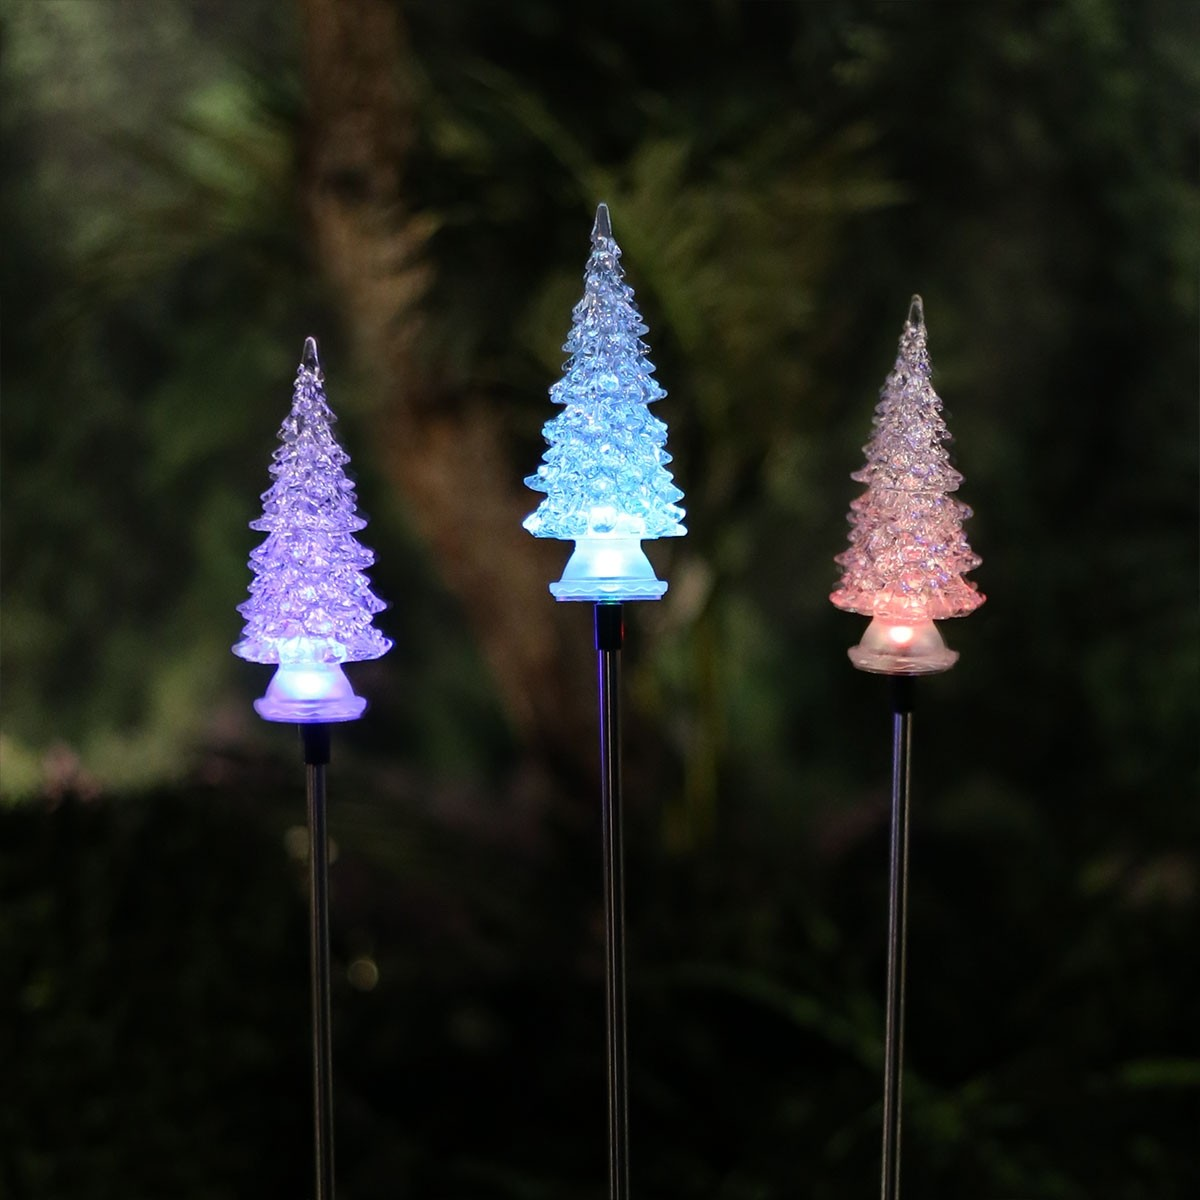 34 color changing solar christmas tree garden stake - Solar Christmas Tree